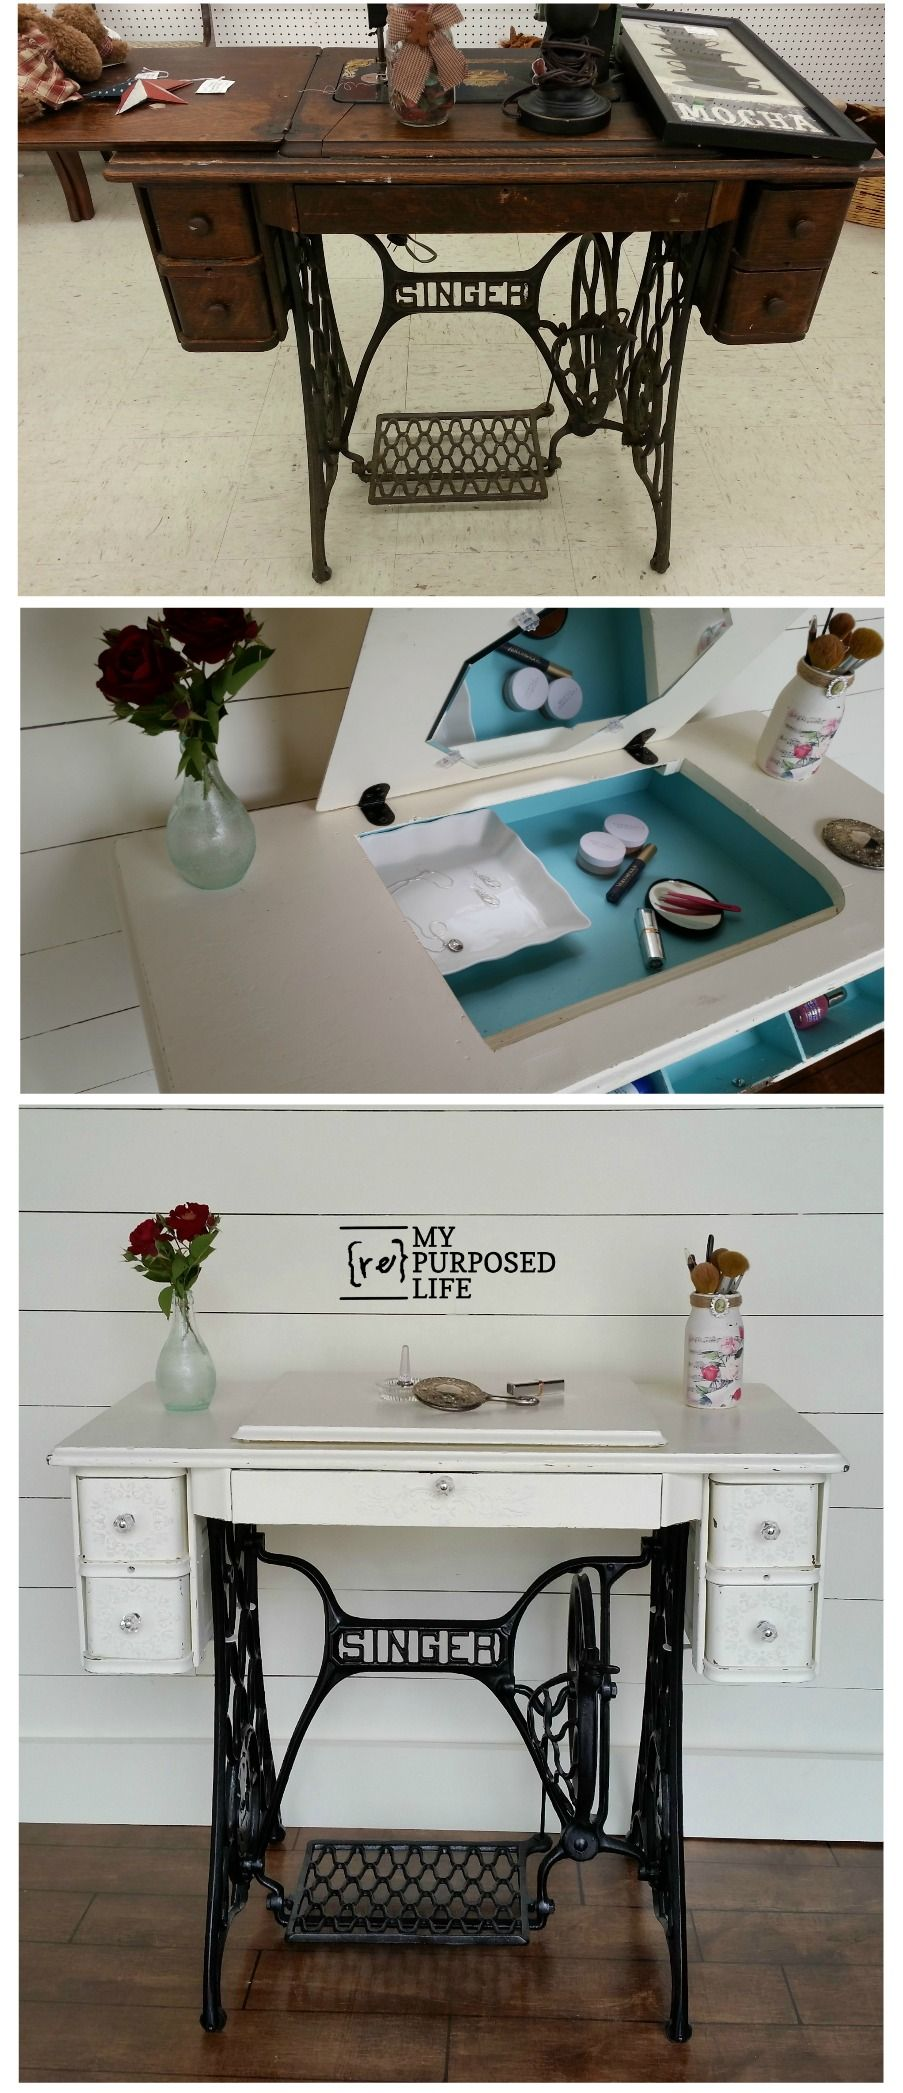 makeup vanity with lots of storage. How to repurpose a singer sewing machine into desk  table or makeup vanity Singer Sewing Machine MyRepurposed Life Makeup vanities